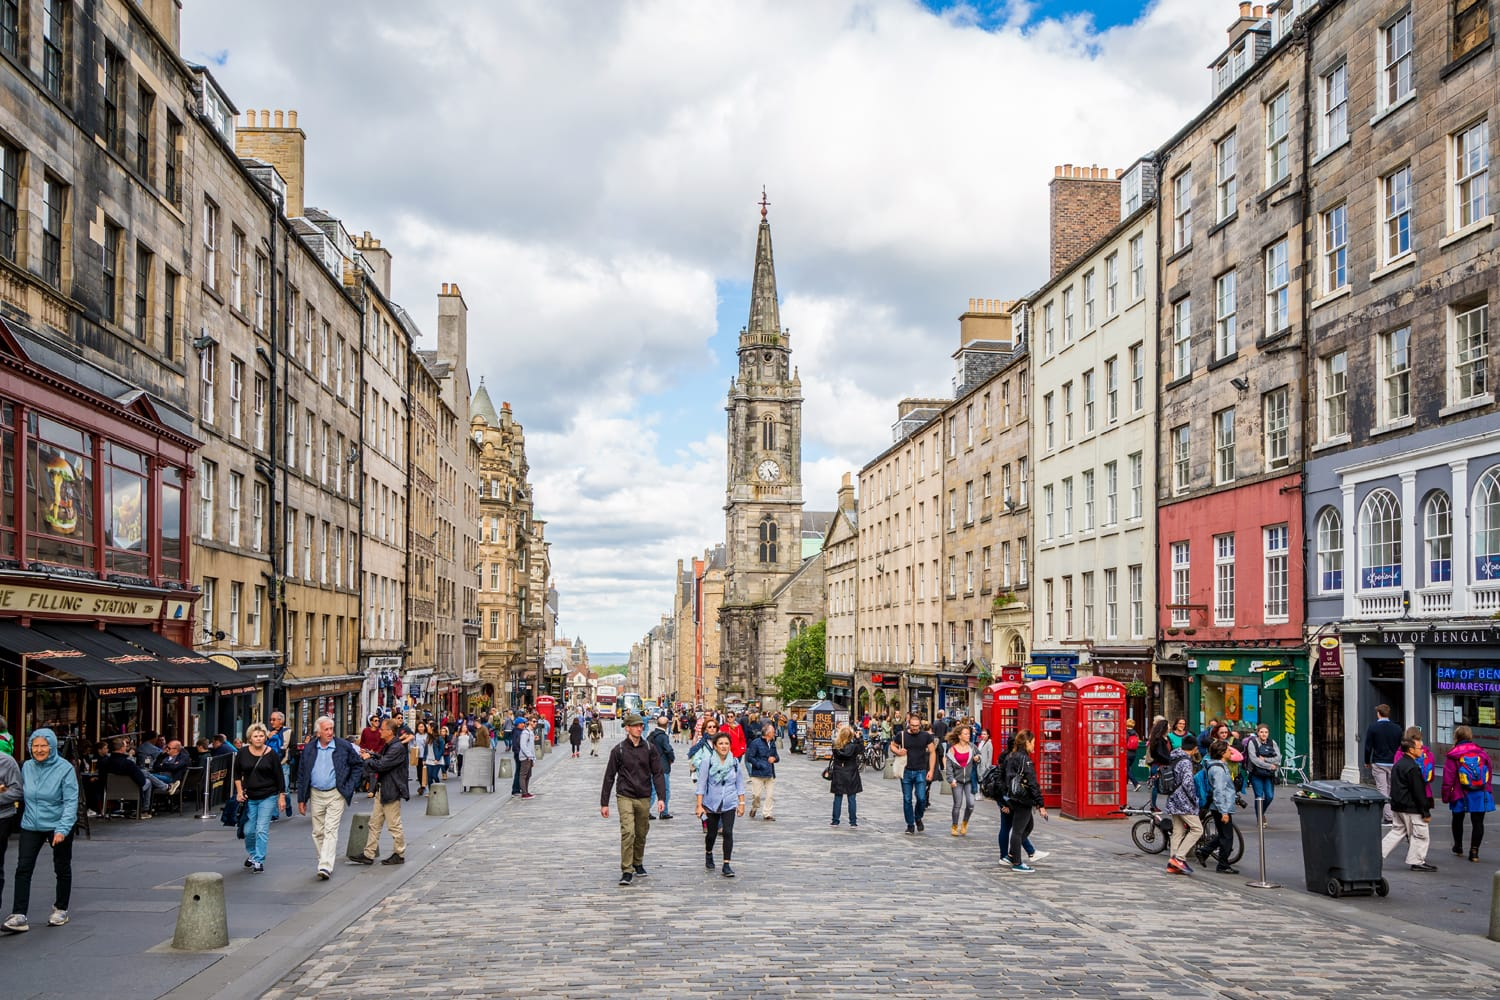 The famous Royal Mile in Edinburgh on a summer afternoon, Scotland.